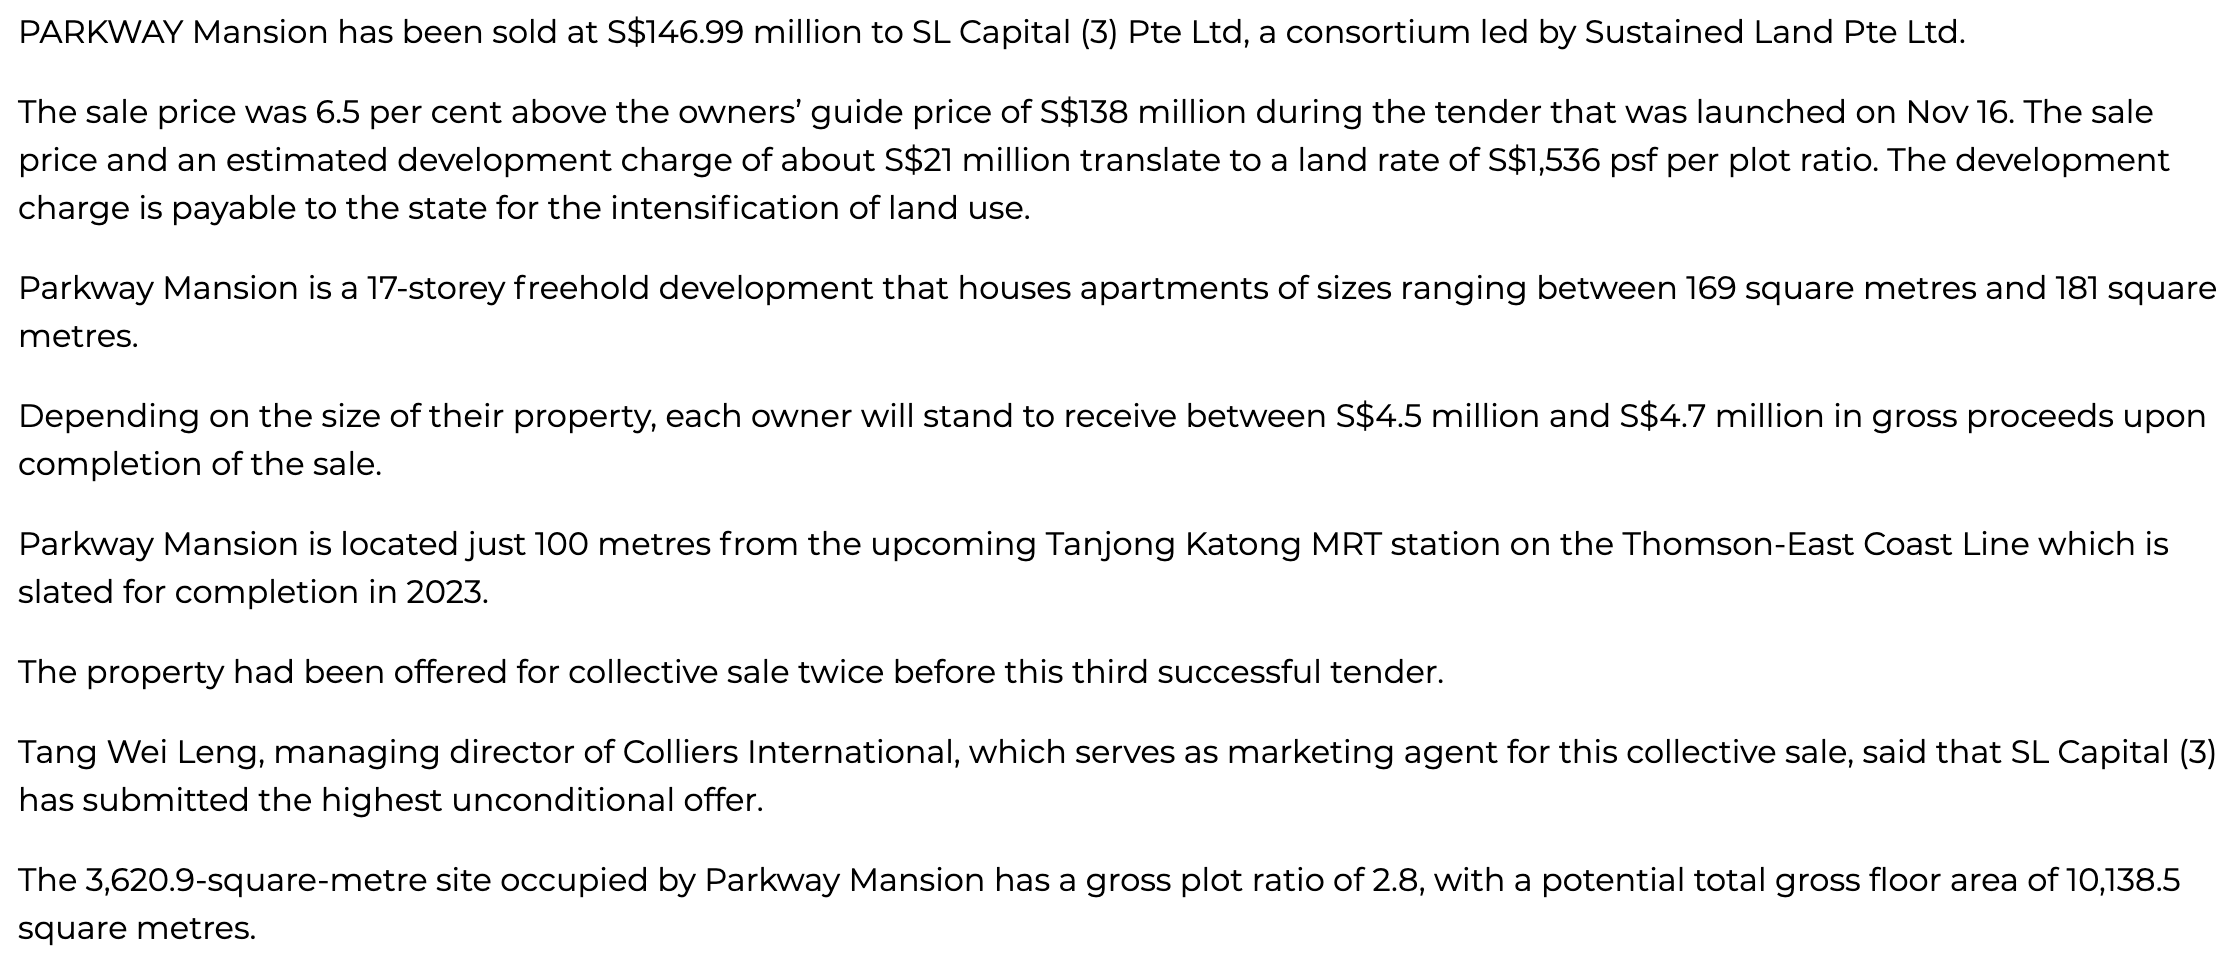 parkway-mansion-sold-to-sustained-land-led-consortium-at-S$146.99m